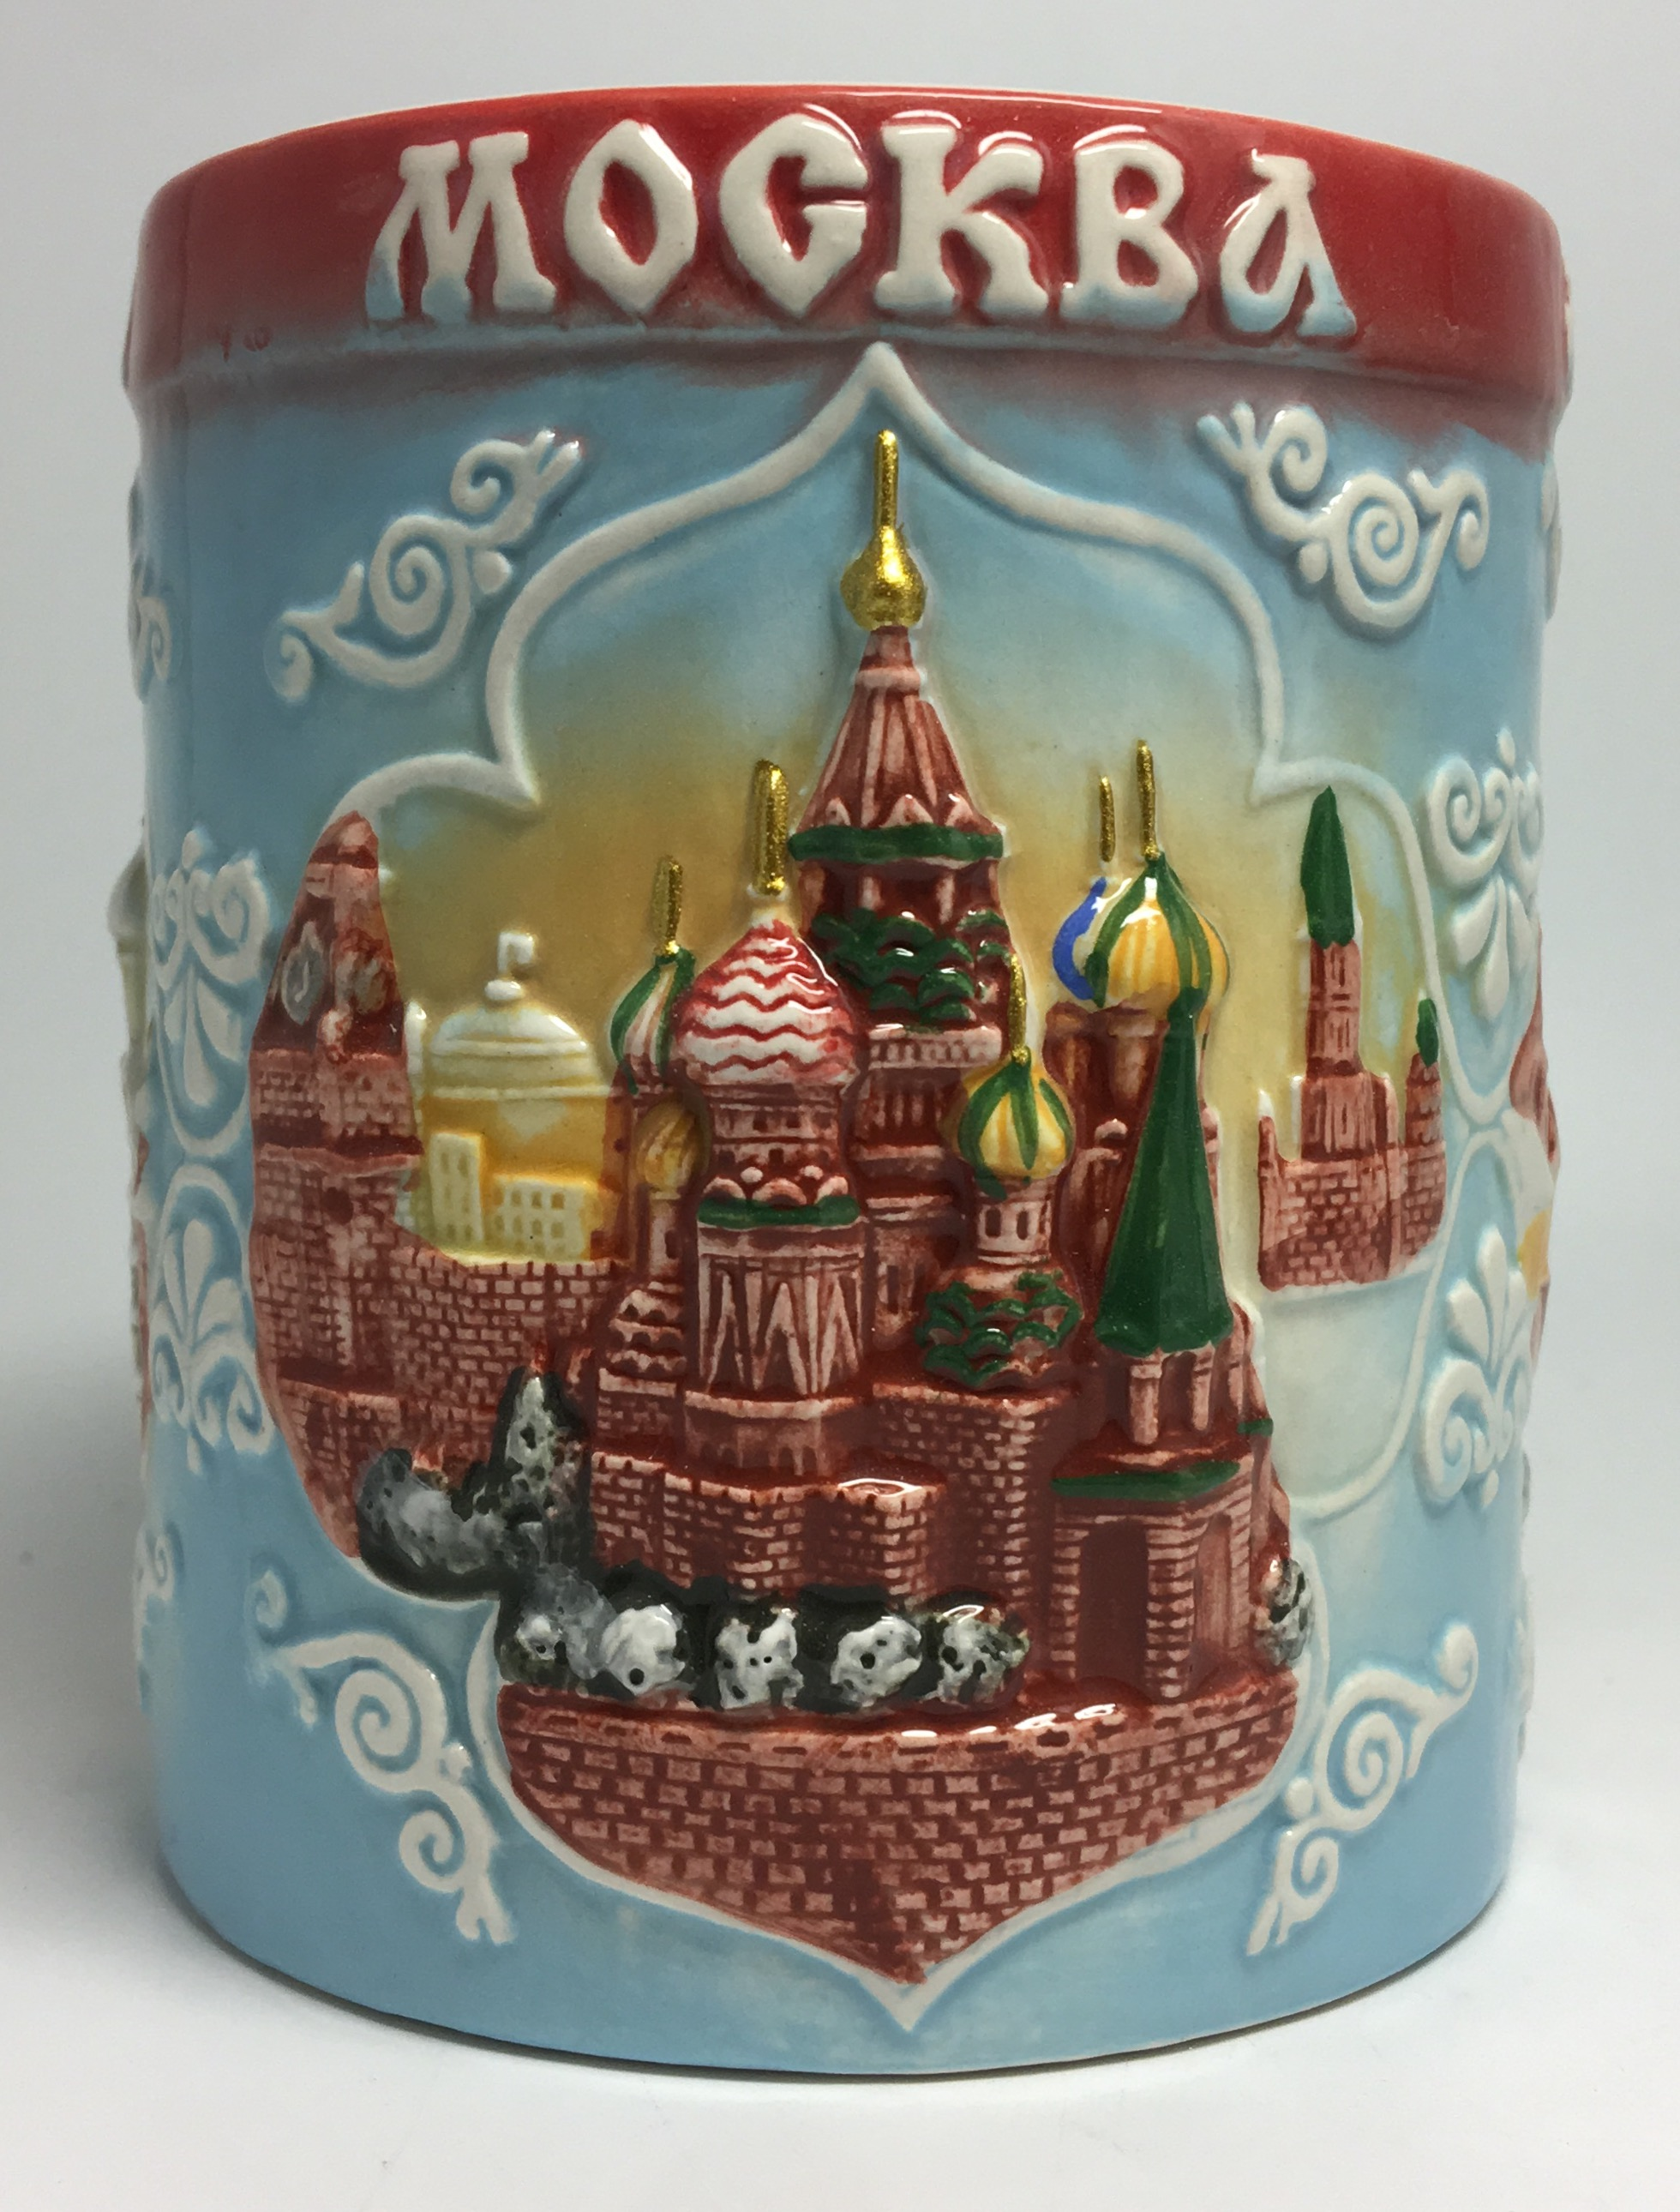 Moscow Attractions Ceramic Mug (by Skazka)